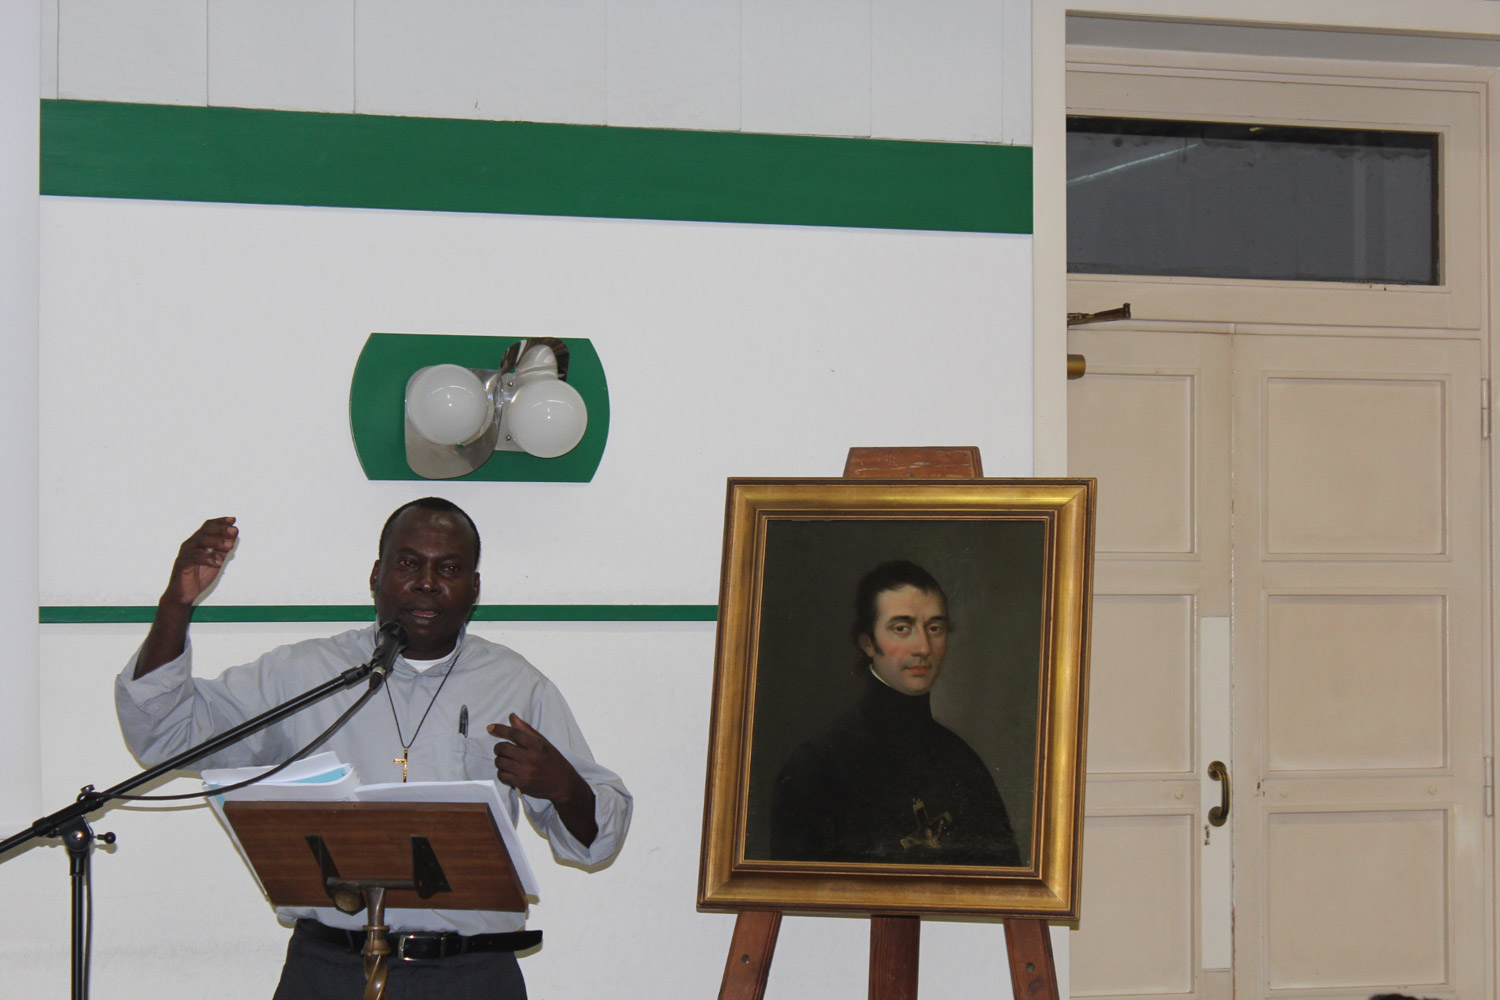 <b>Congress on Oblate Charism - Day 2 Rome</b><br>Fr. Gaby Kinze OMI of DR Congo<br>Shanil Jayawardena OMI<br>July 1st, 2015